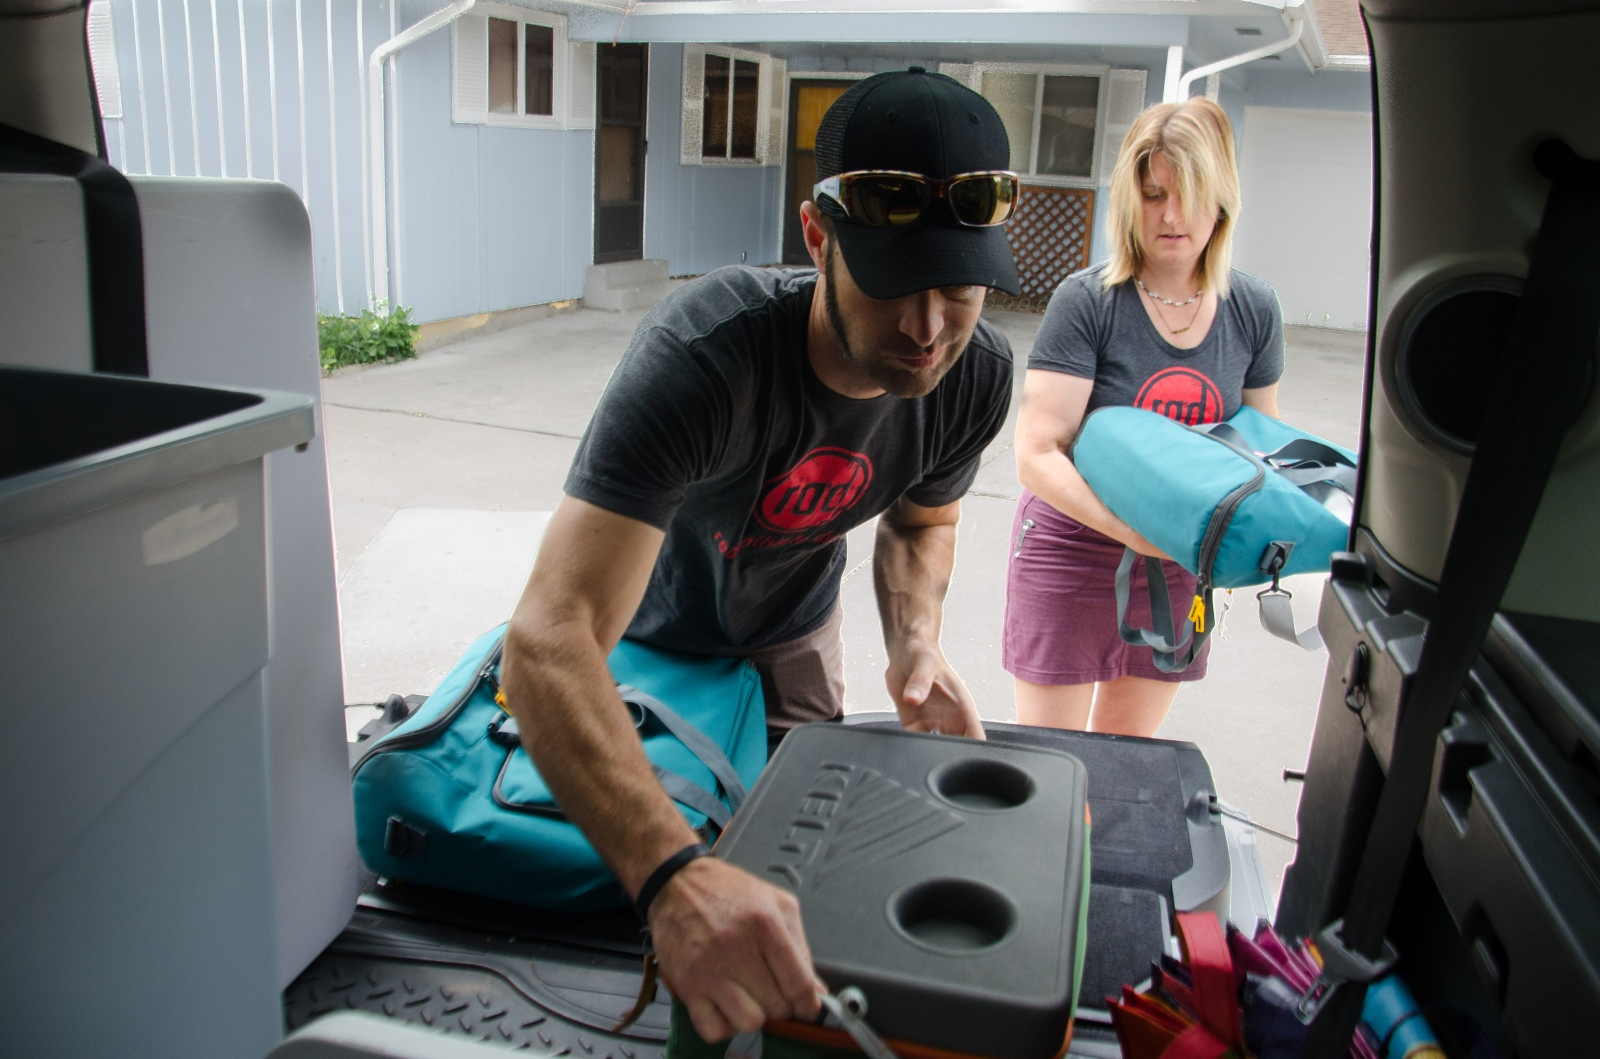 Kelly and Morgan load up the truck.  While they deliver by bike whenever possible, they are preparing to serve a party of 15 for Ironman Dave Scott's Ironman Training Camp.